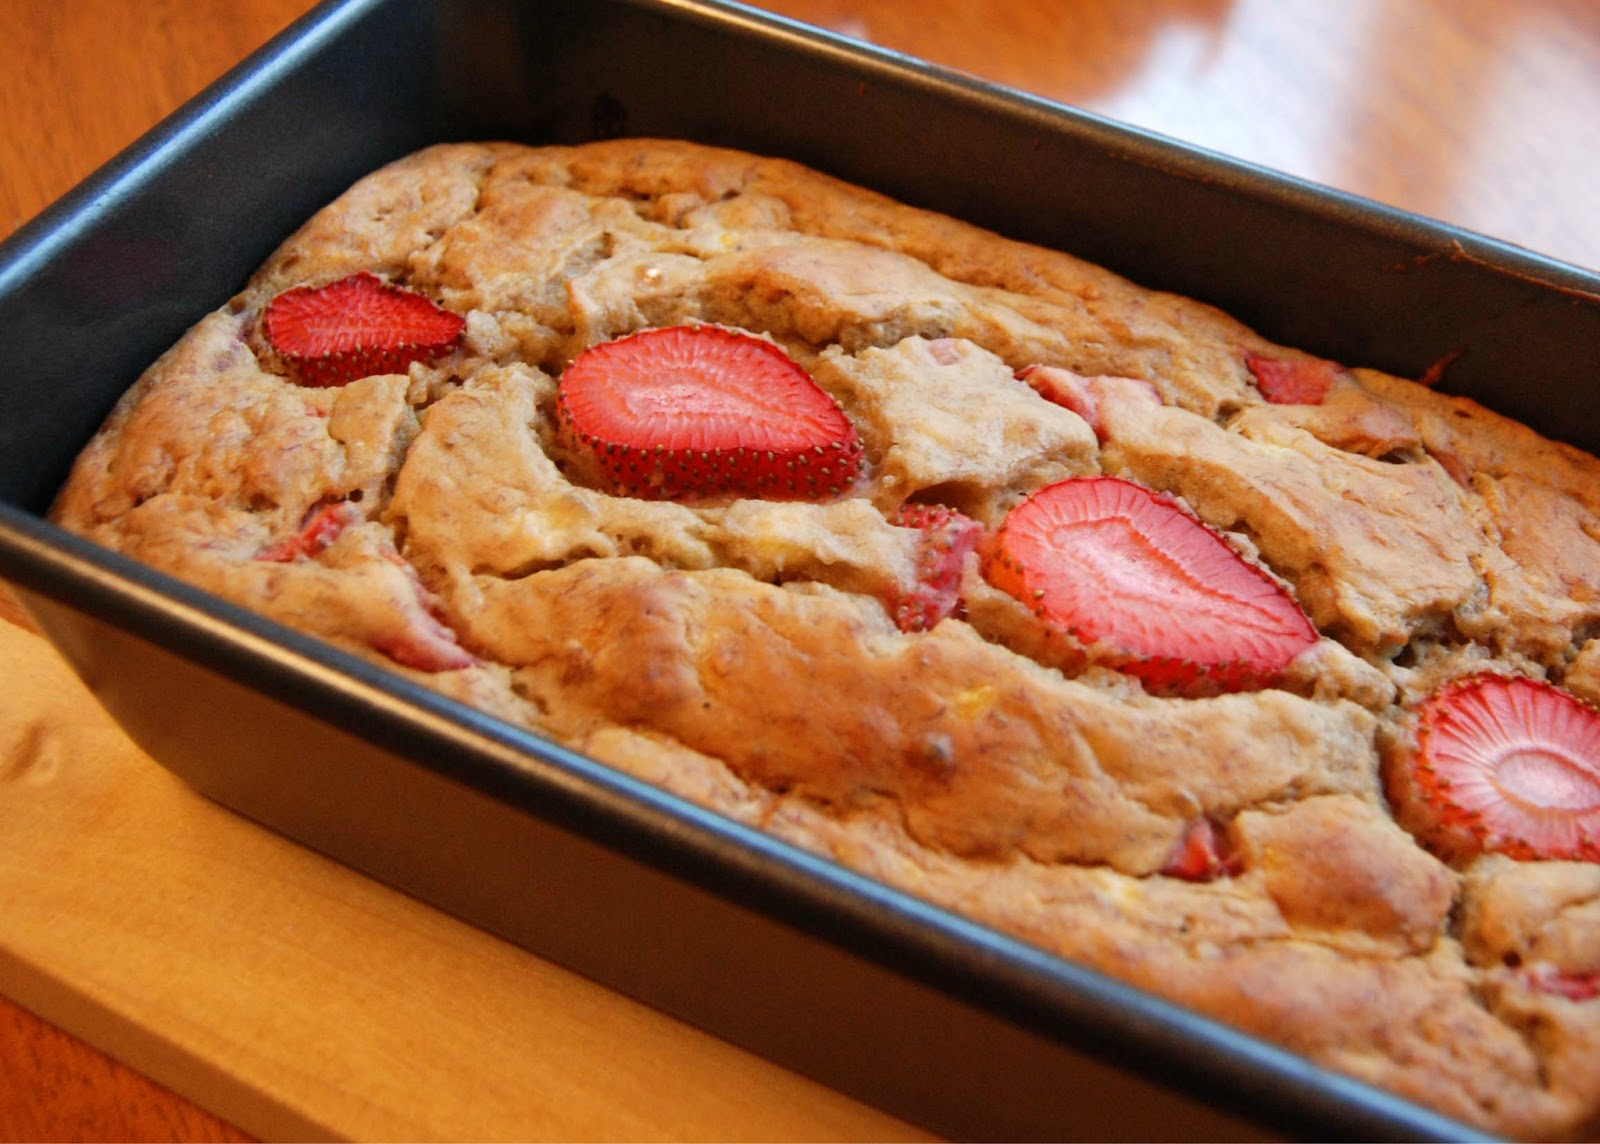 Strawberry+Banana+Bread+with+Strawberry+Greek+Yogurt+001.JPG